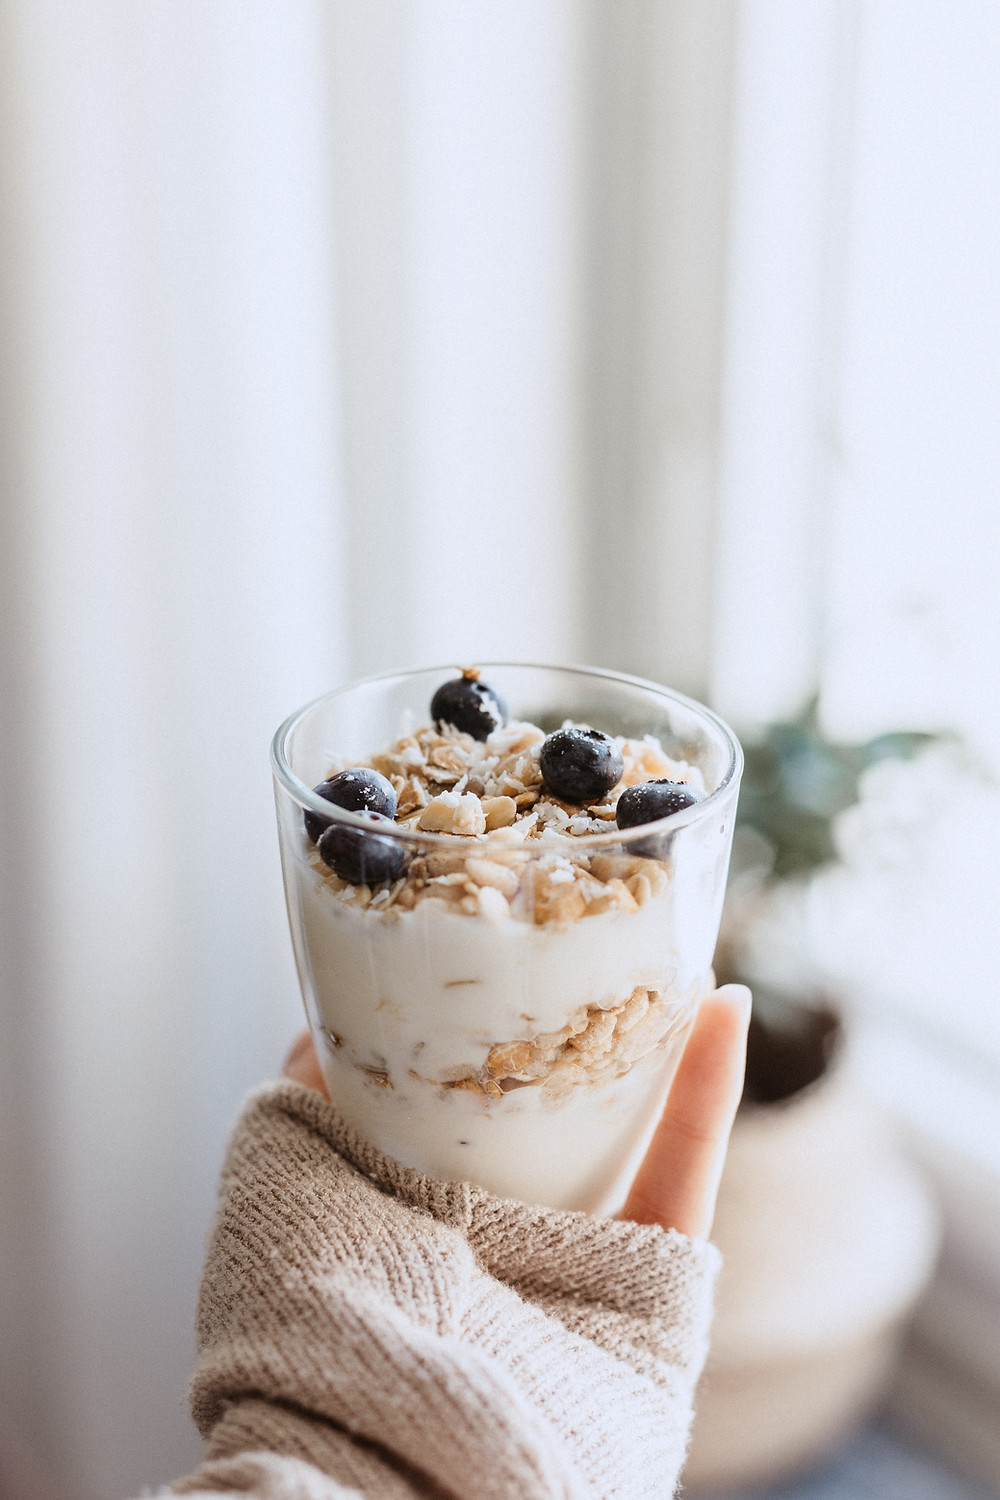 greek yoghurt with blueberries and oats